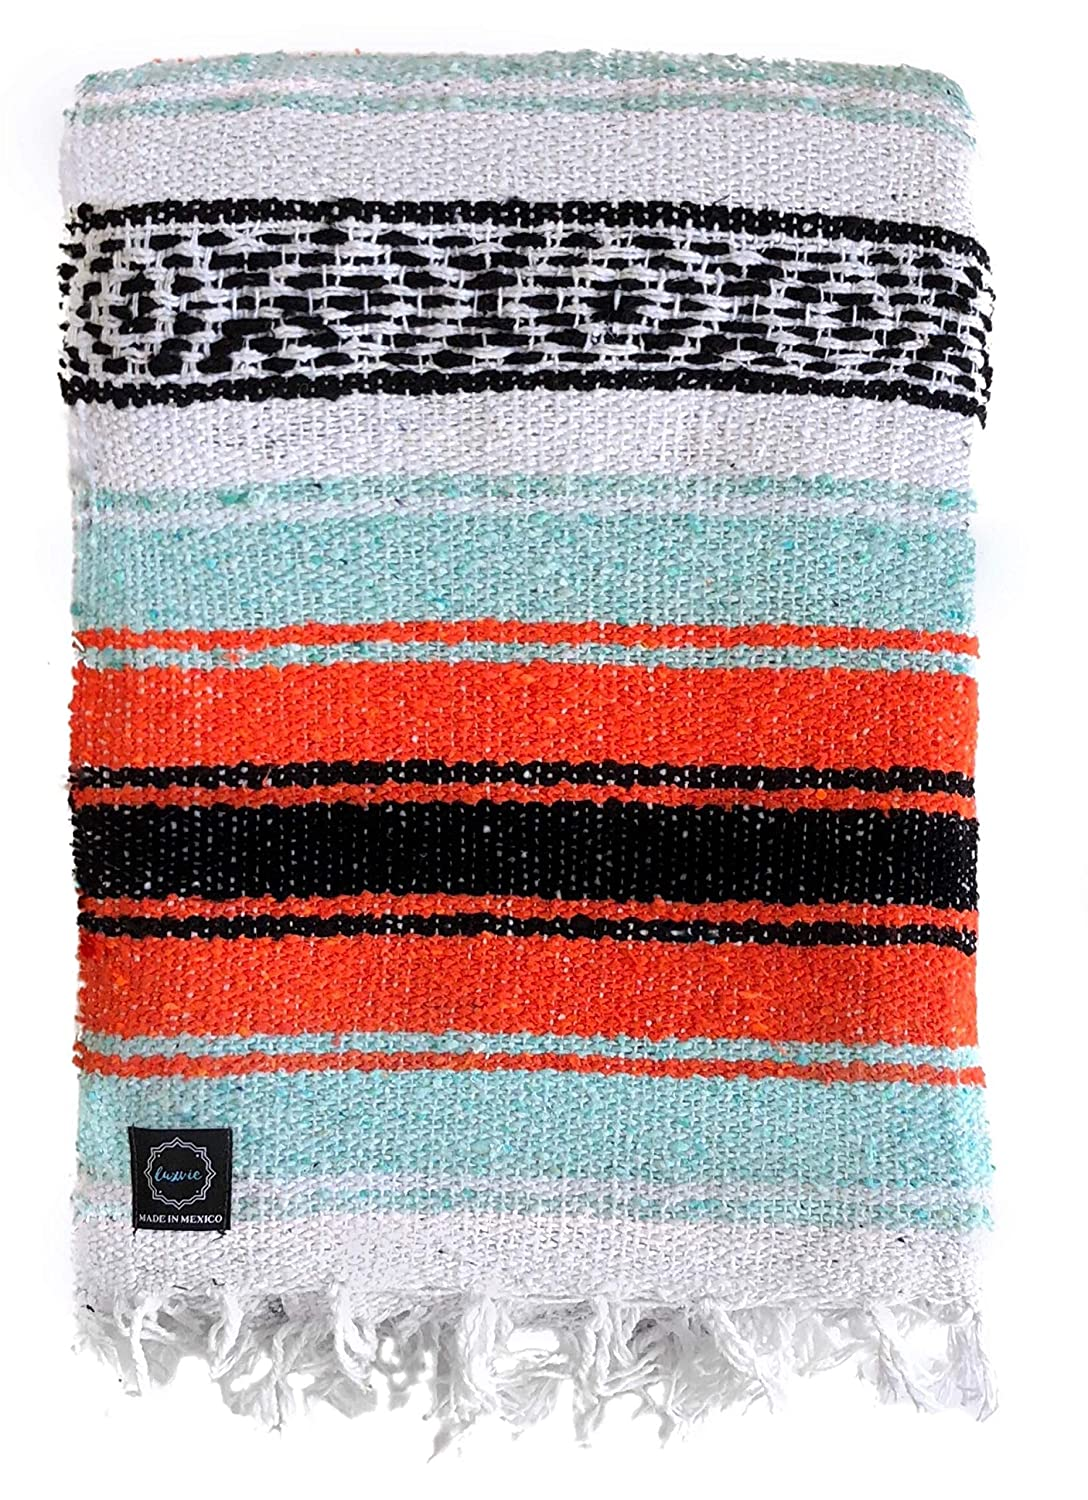 luxvie Mexican Blanket Designs: Authentic Large Falsa Blanket Ideal for Outdoors, Camping, Yoga, Home Decor, Beach, Etc. in Soft Acrylic Blend ...